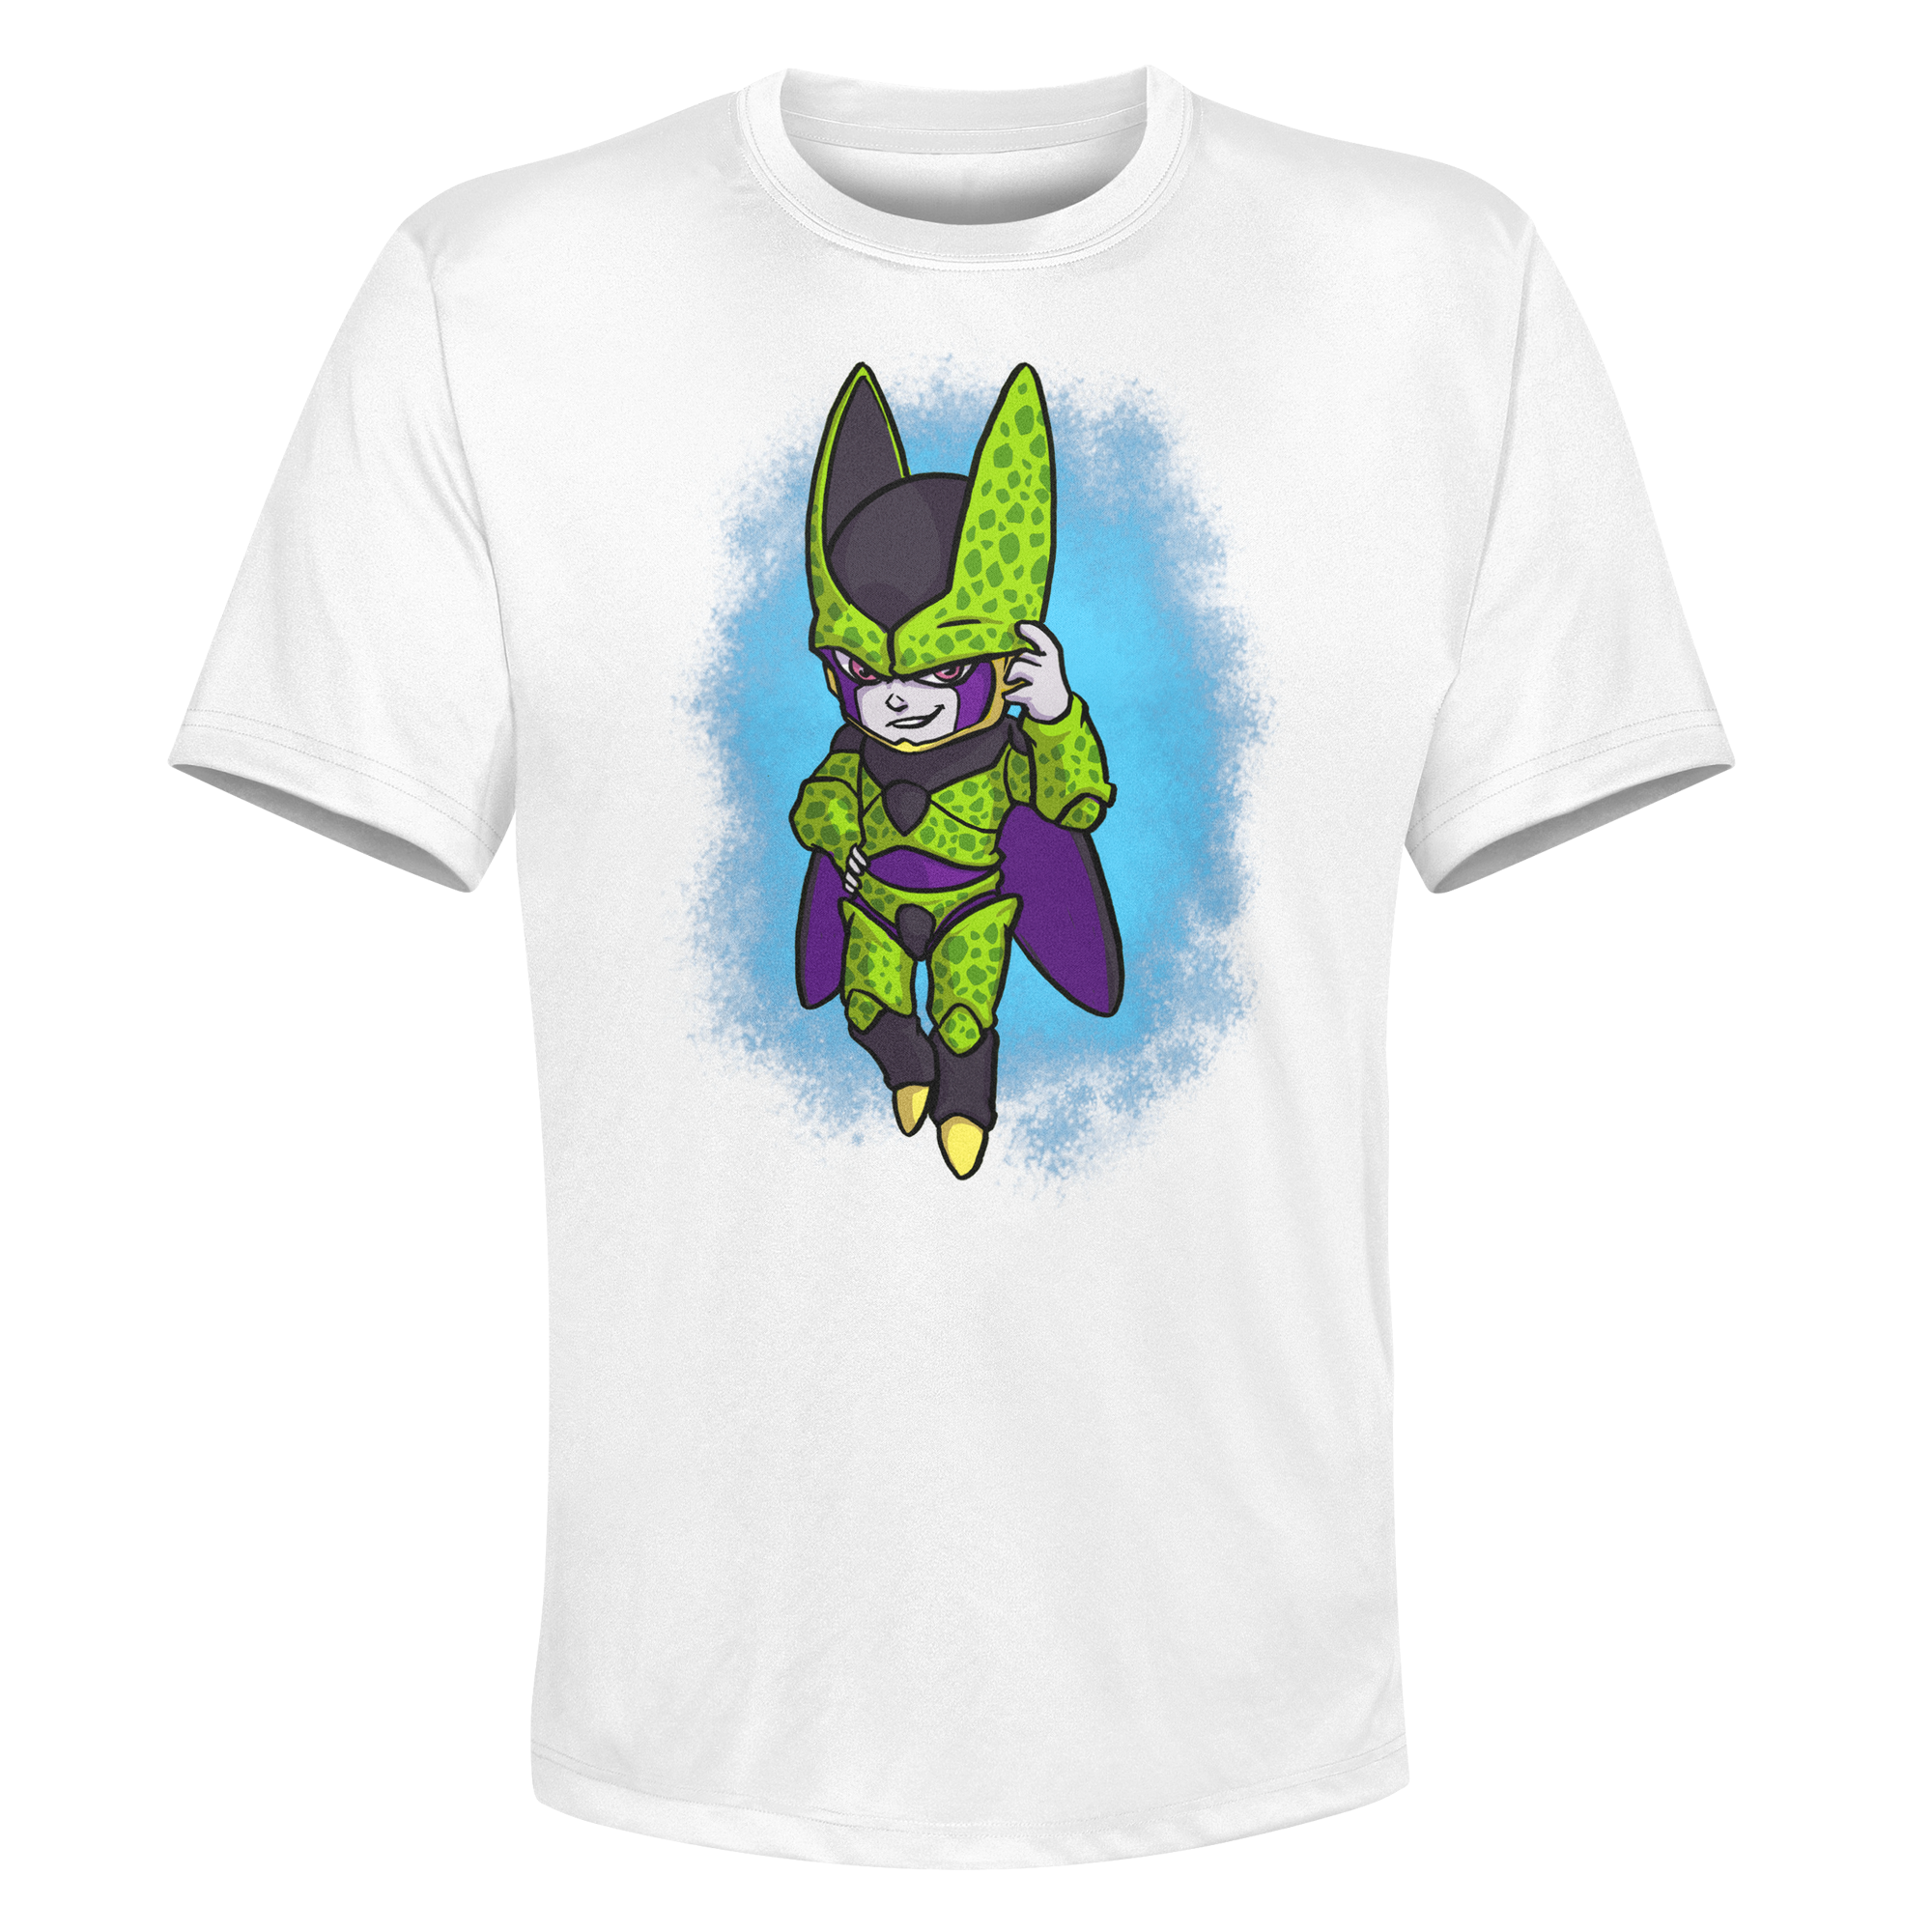 Cell - White Performance Graphic Tee